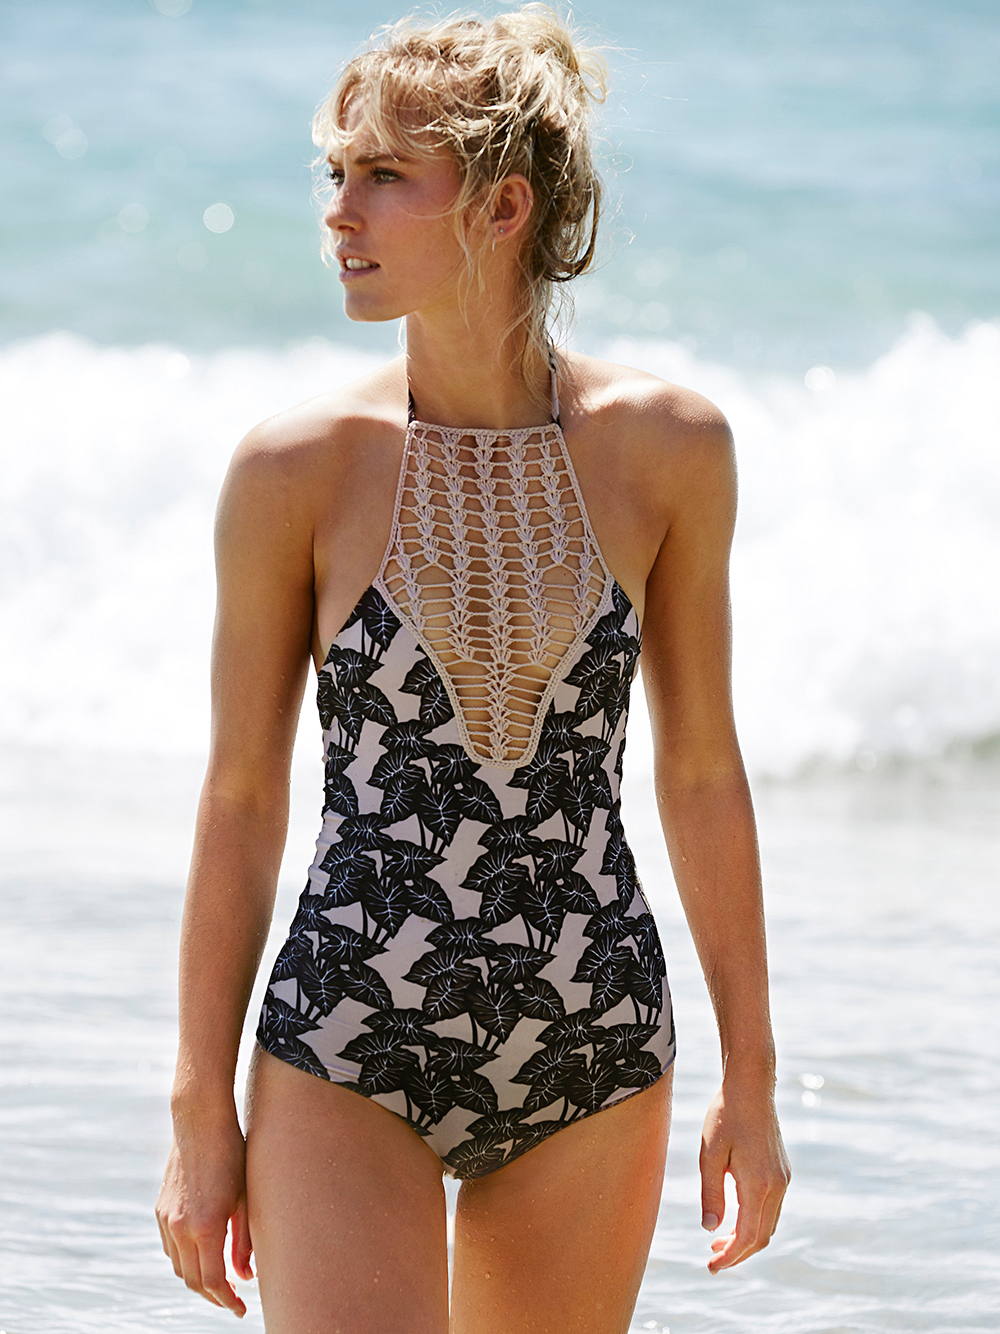 Teaehupo'o Full Piece Print at Free People Clothing Boutique - One Piece Swimsuits